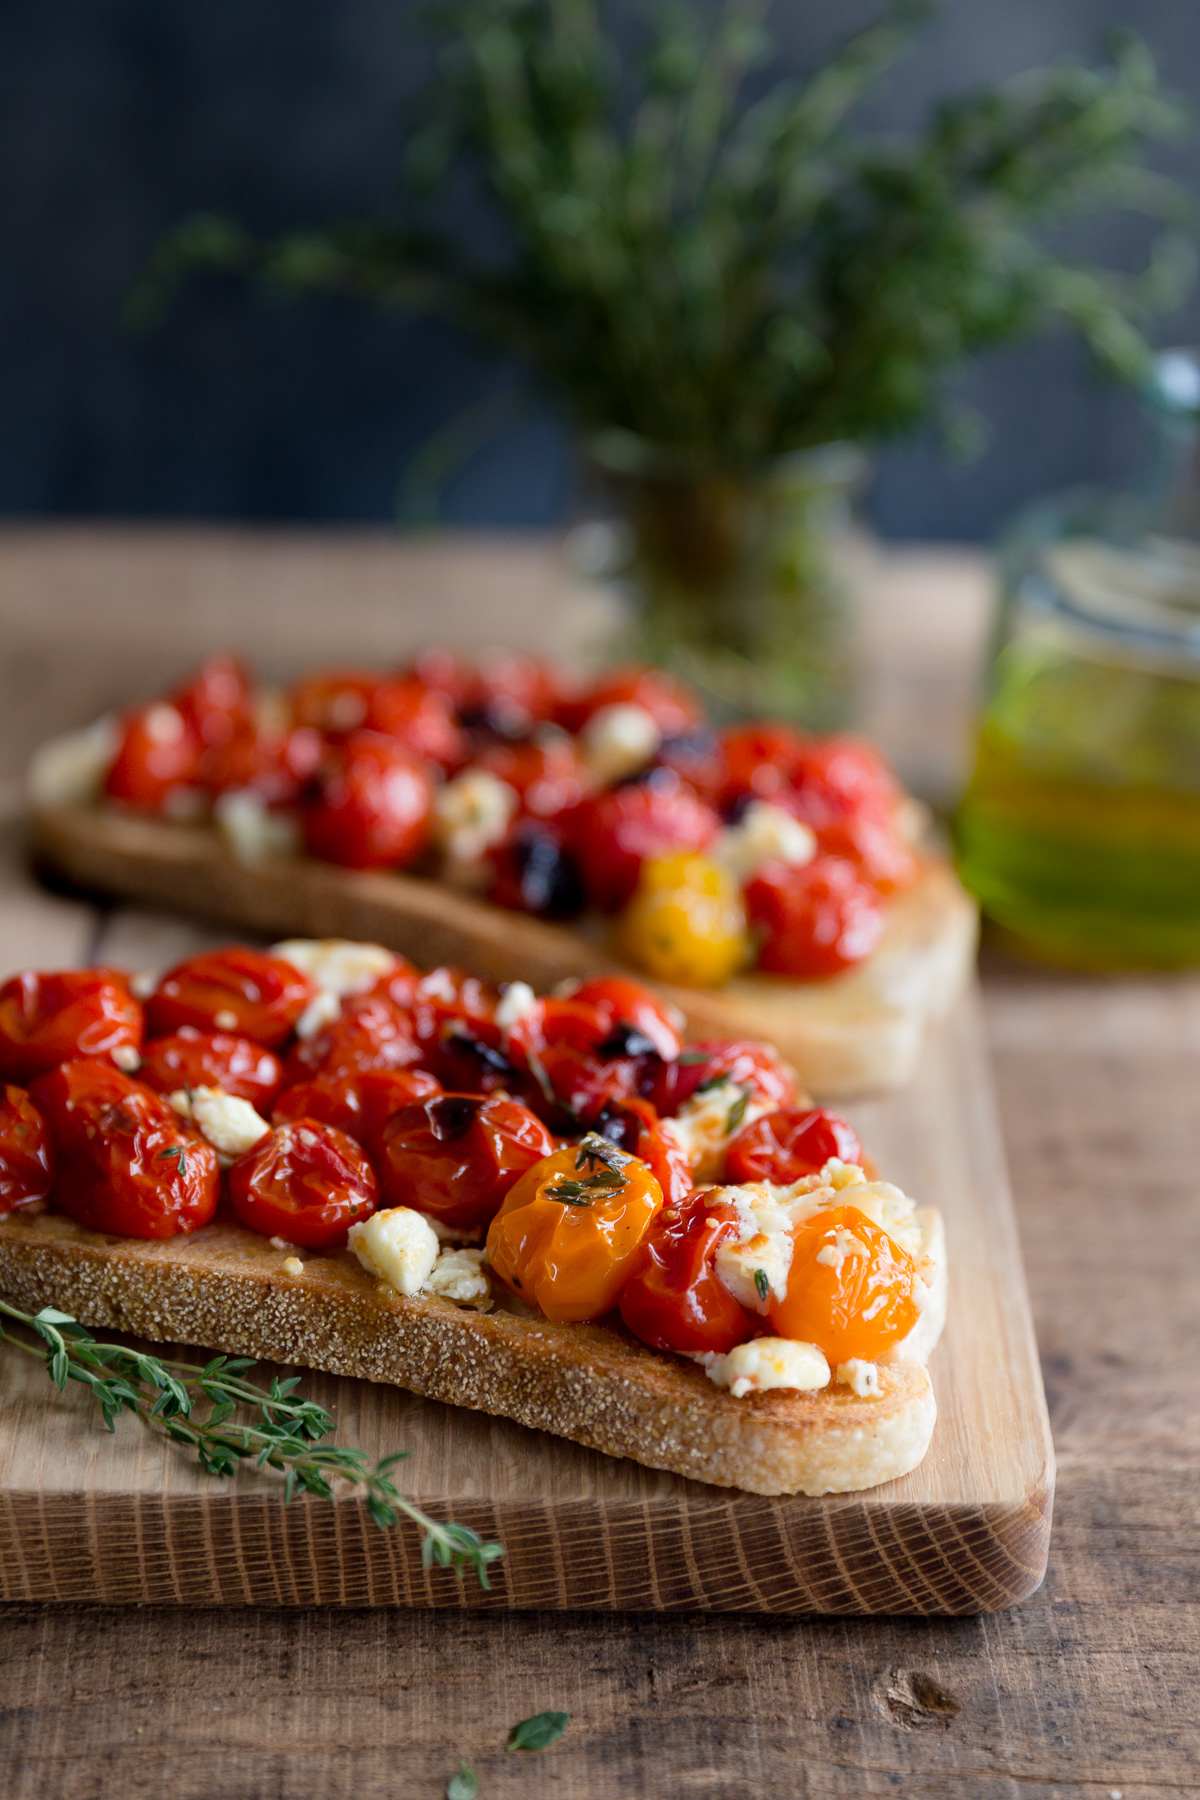 Roasted tomatoes and feta on slices of toasted bread.